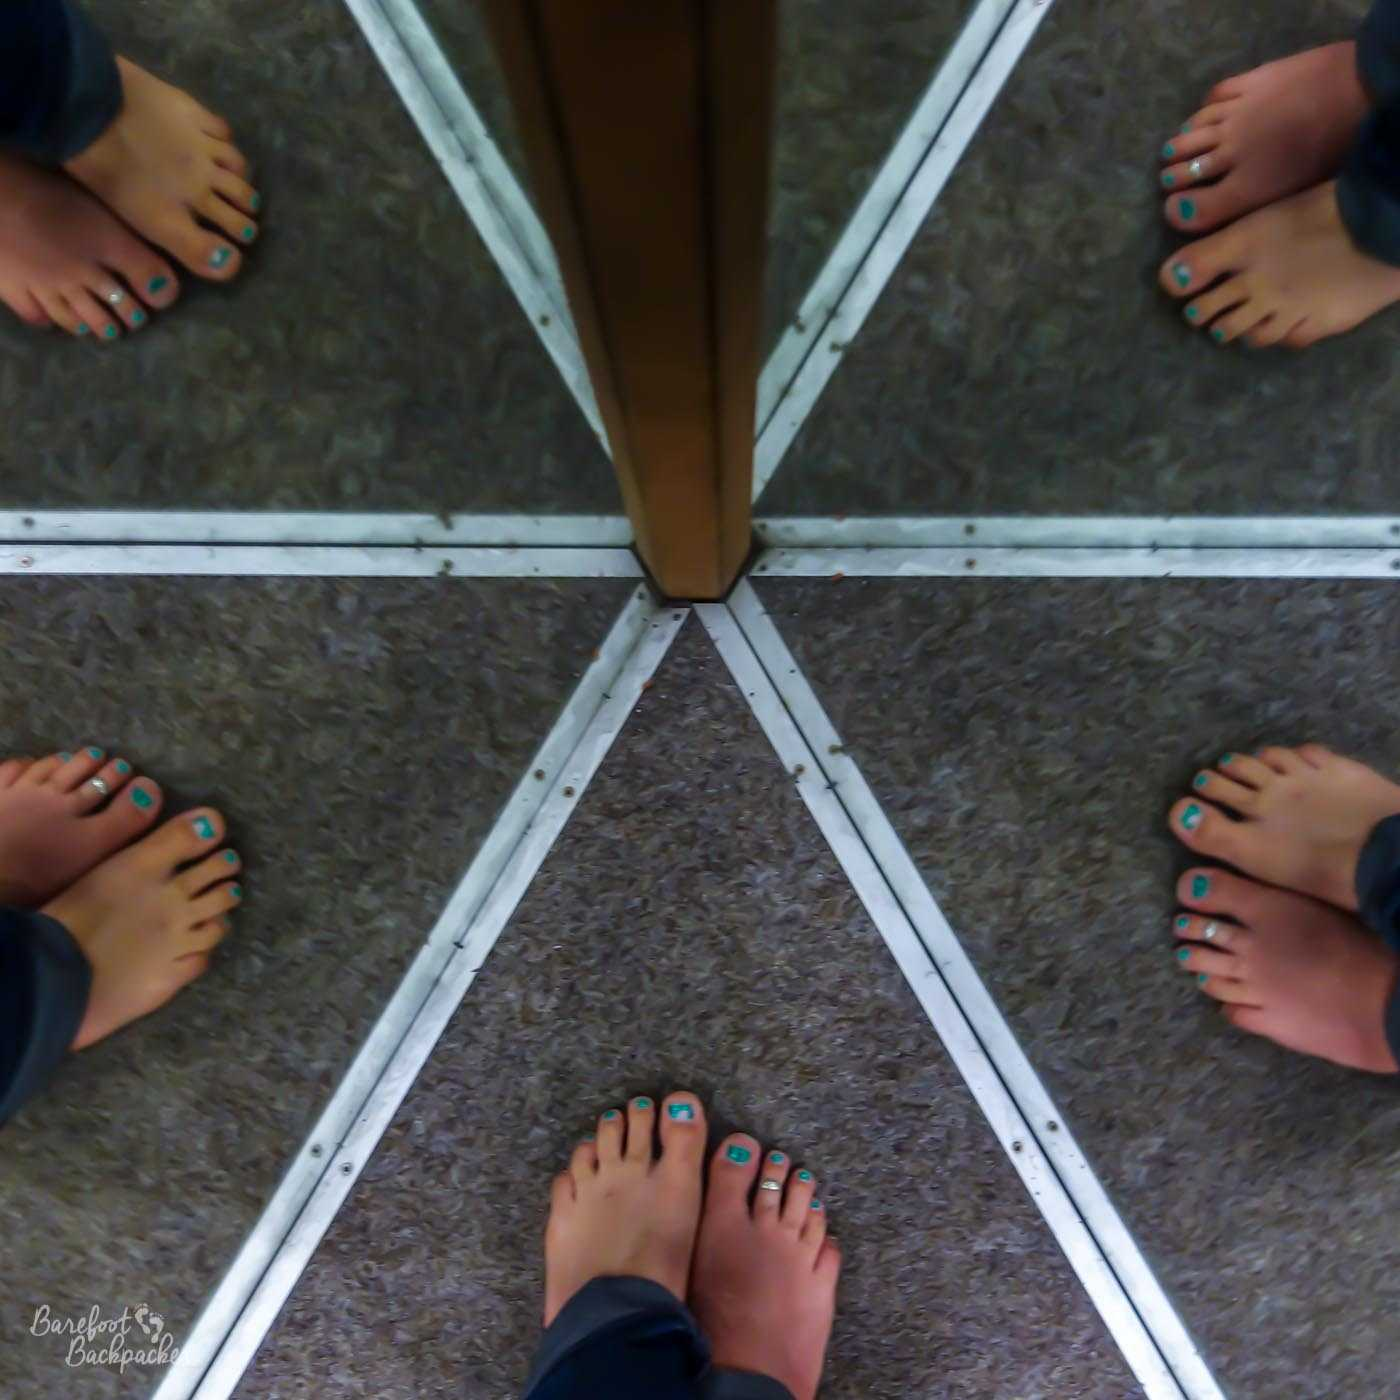 On a grey carpet with a pole in the centre of shot, there appear to be five sets of bare feet each separated by a couple of metal rails. In reality it's a small passageway made up with mirrored walls and four of the feet and rails are mere reflections.